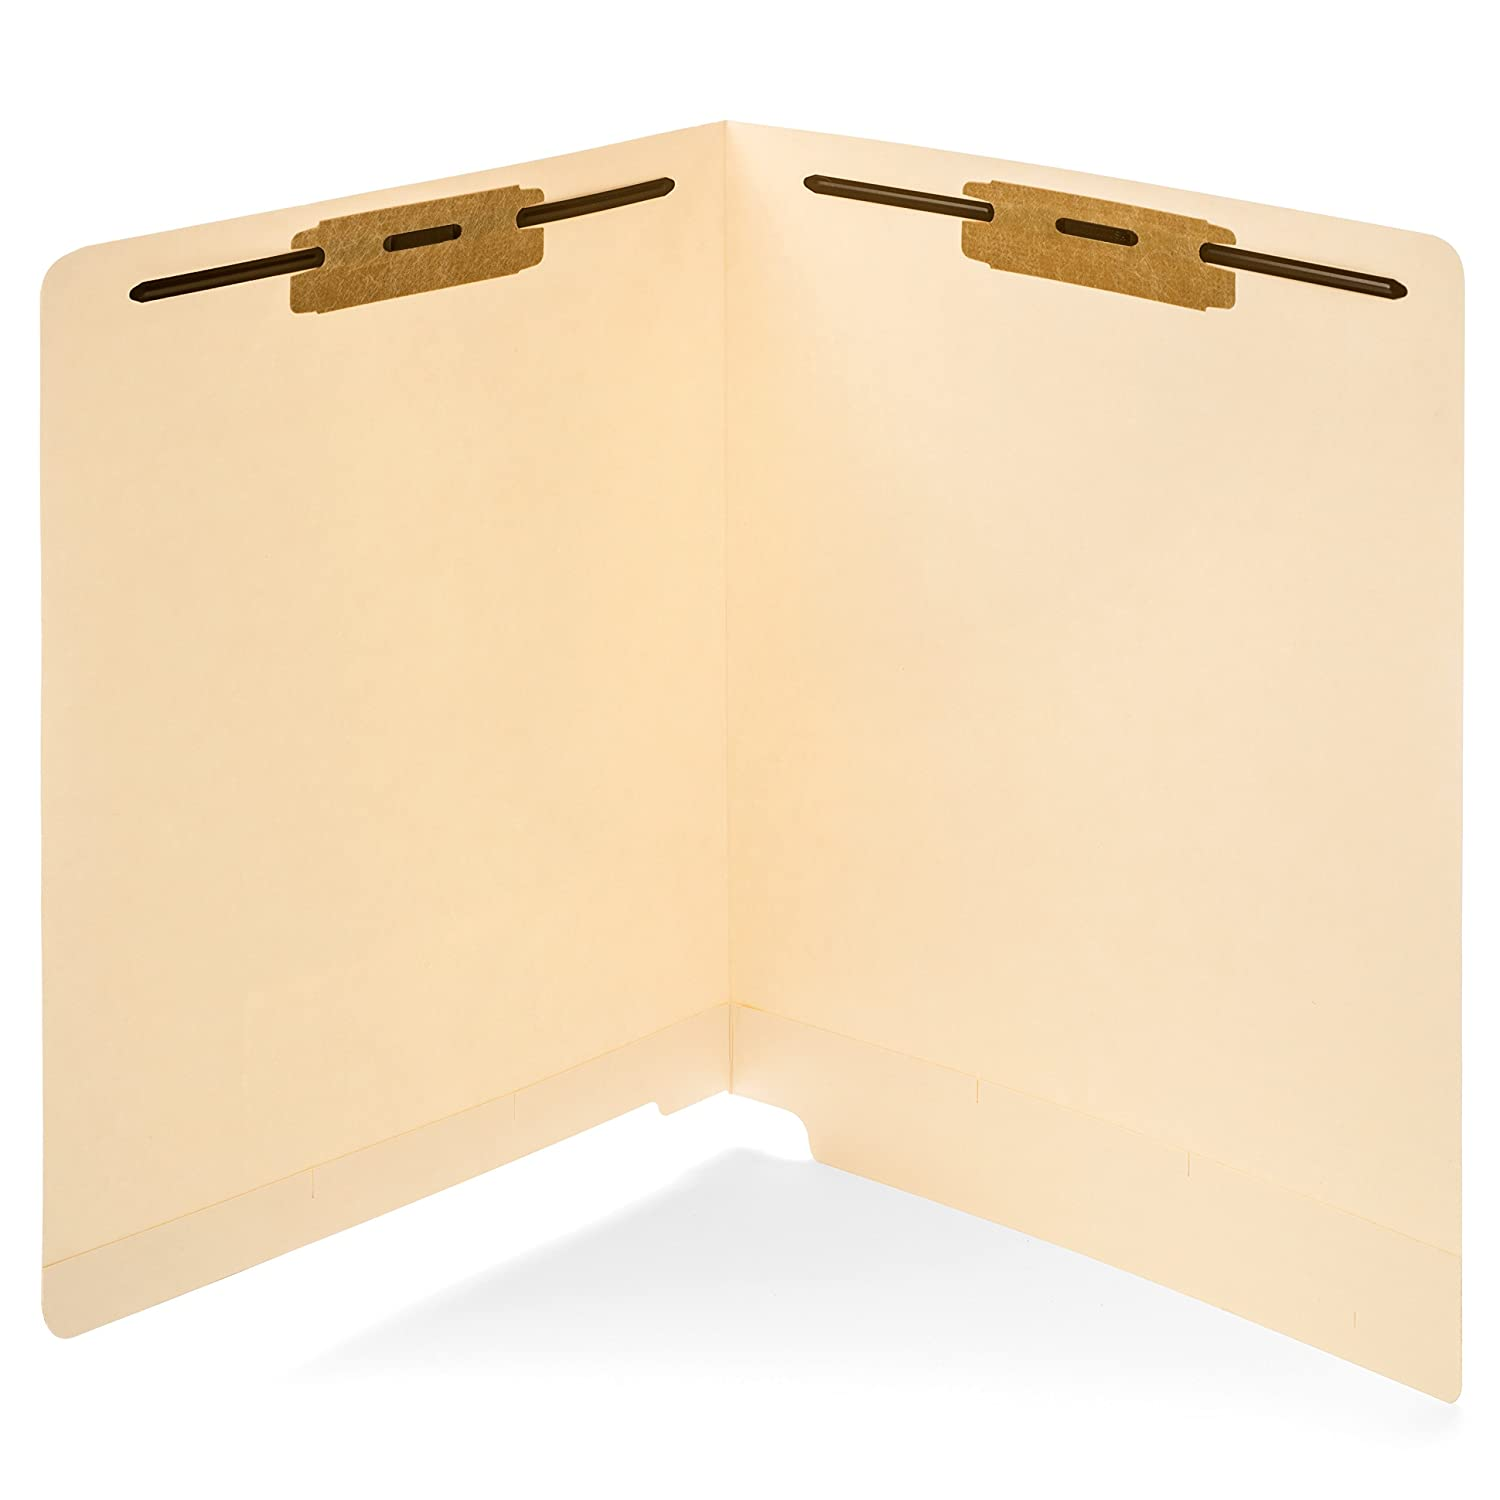 50 End Tab Fastener File Folders- Reinforced Straight Cut tab- Designed to Organize Standard Medical Files and Office documents– Letter Size, Manila, 50 Pack